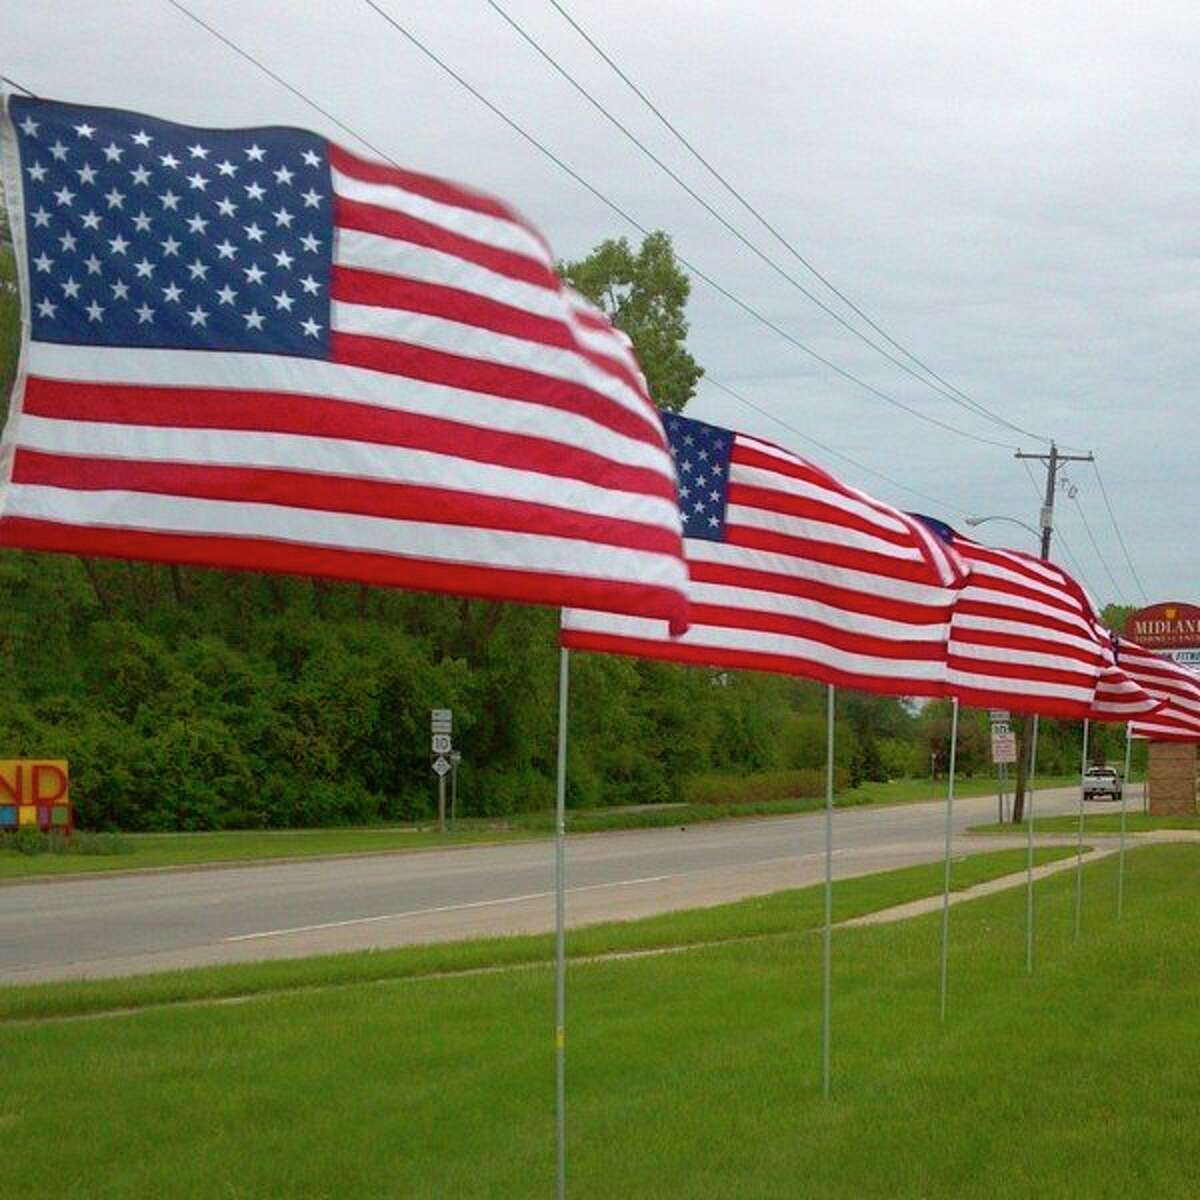 For the fifth year, Kiwassee Kiwanis Club of Midland will be placing 400 flags around Midland on five national holidays-- Memorial Day, Flag Day, Fourth of July, Labor Day and Veterans Day. (Photo provided)